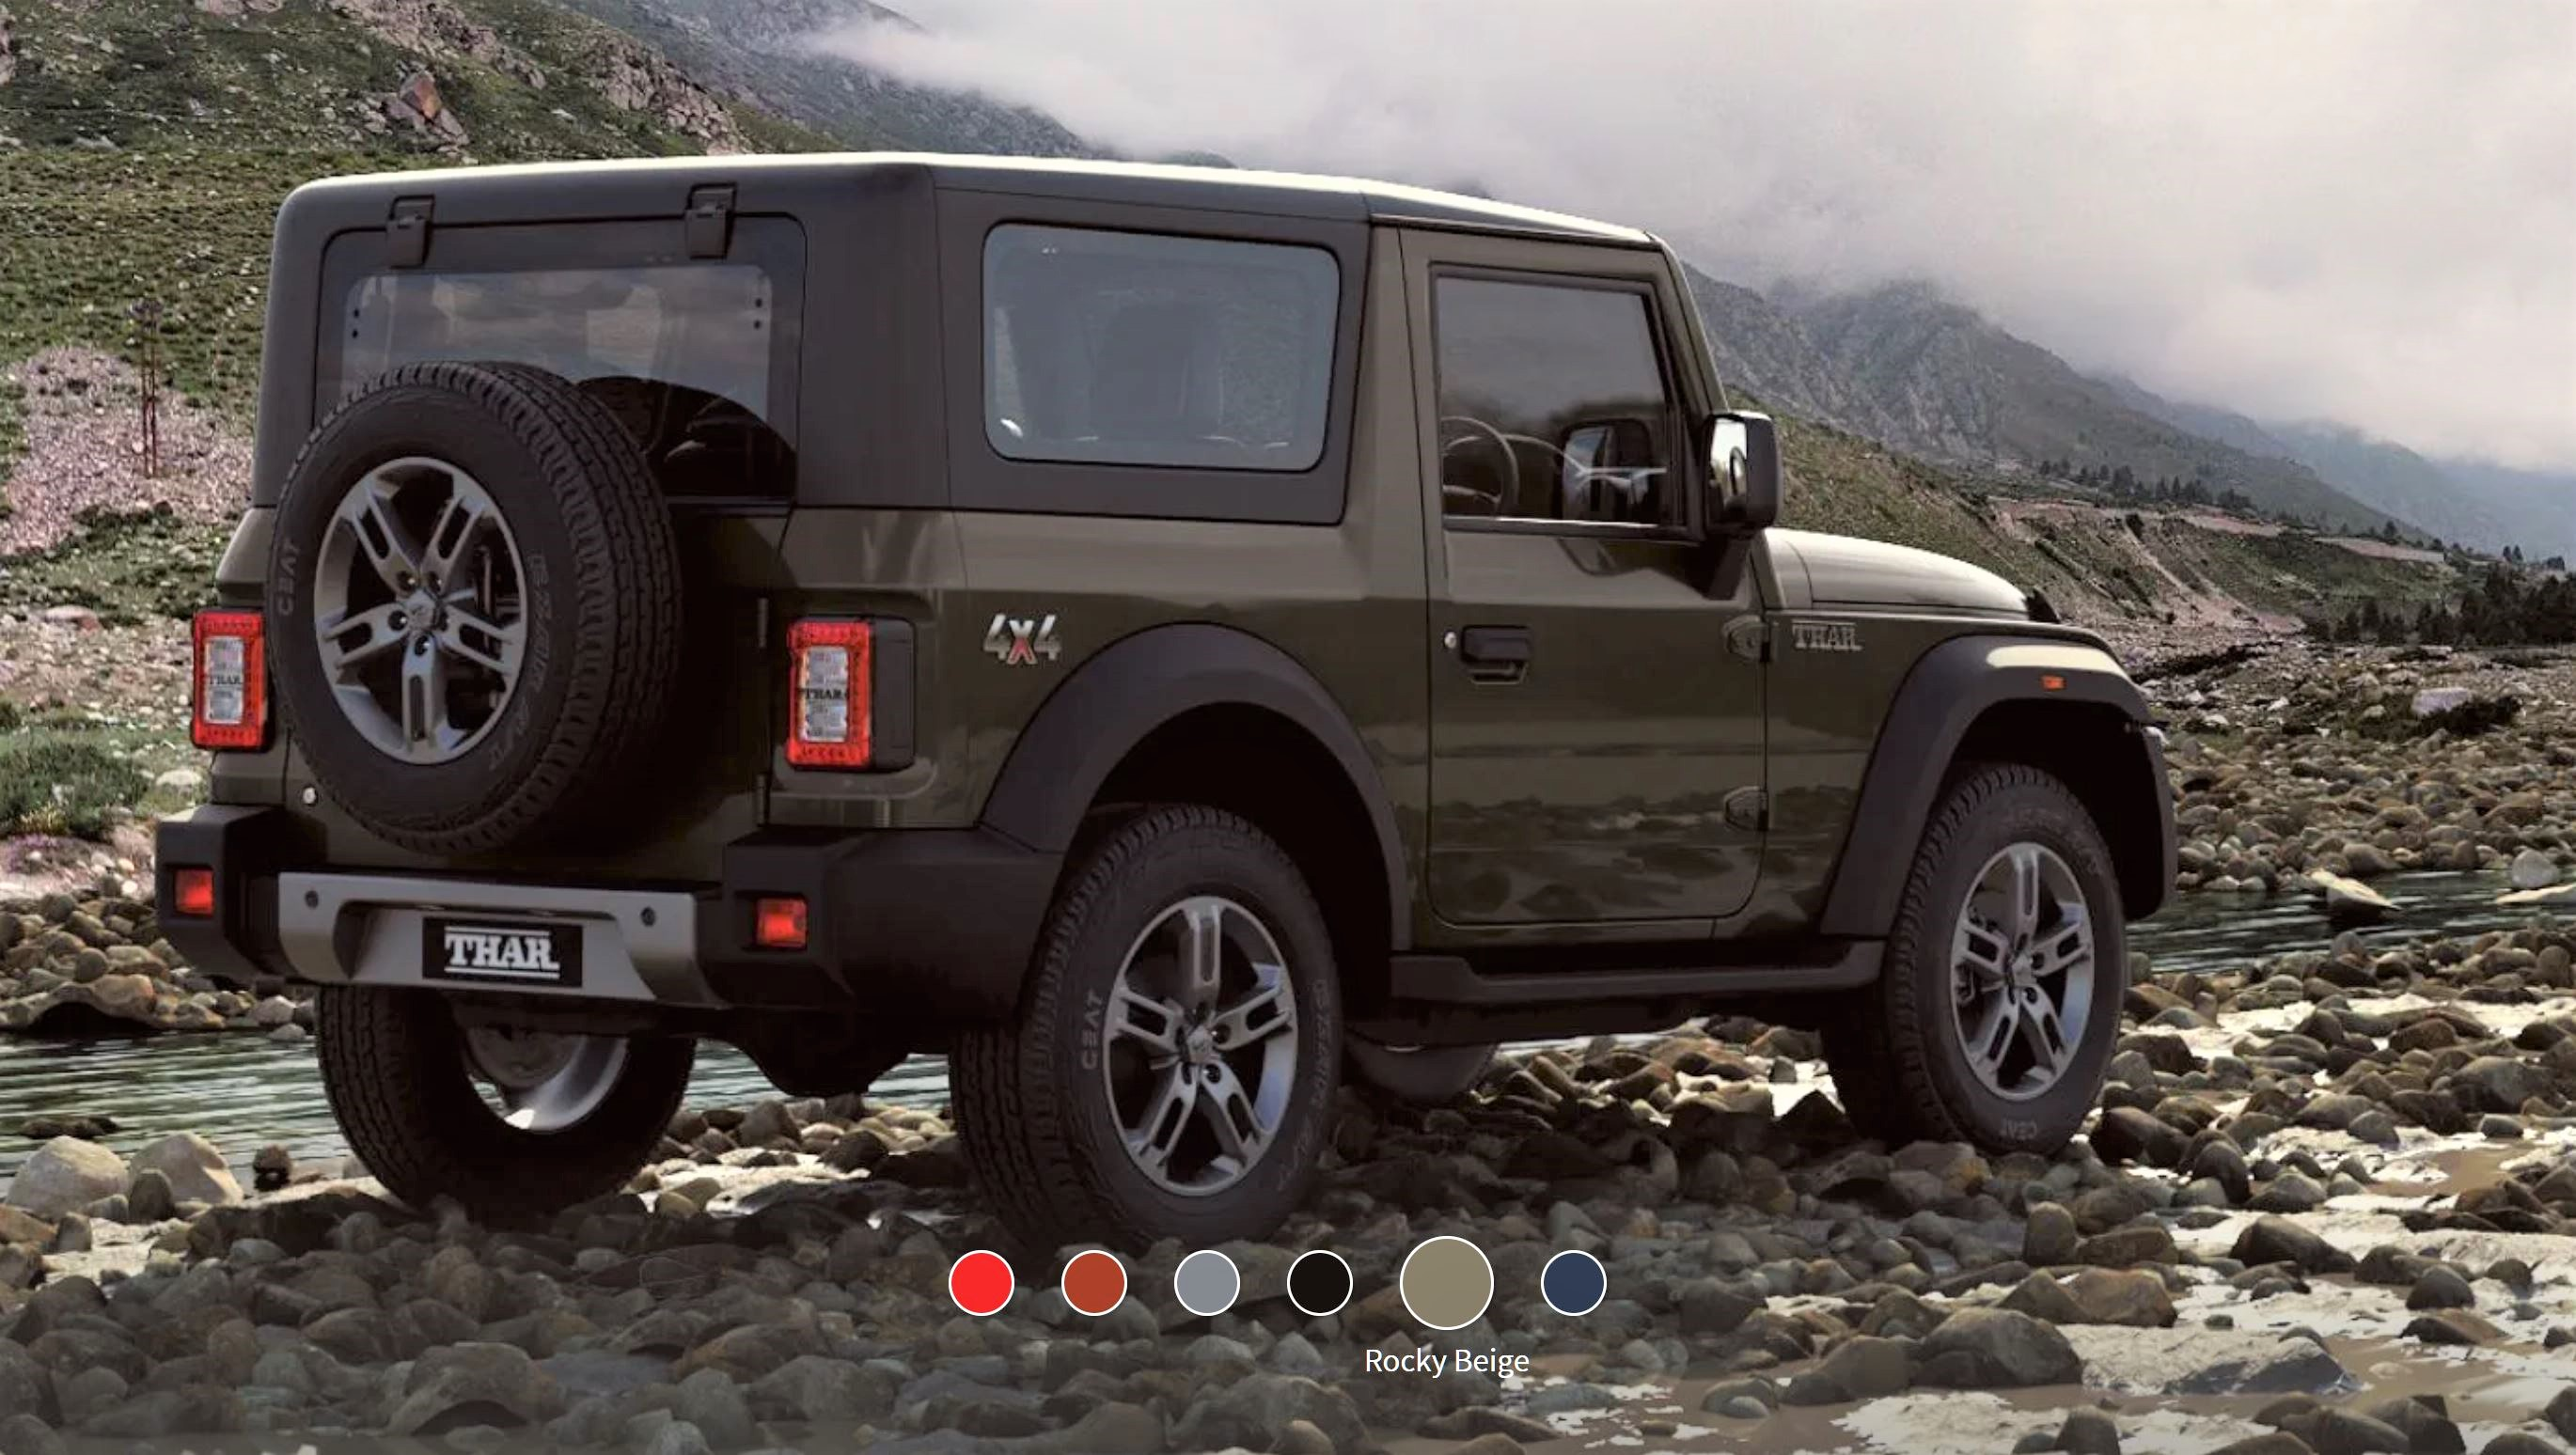 New Mahindra Thar Rocky Beige Rear 3-Quarter View